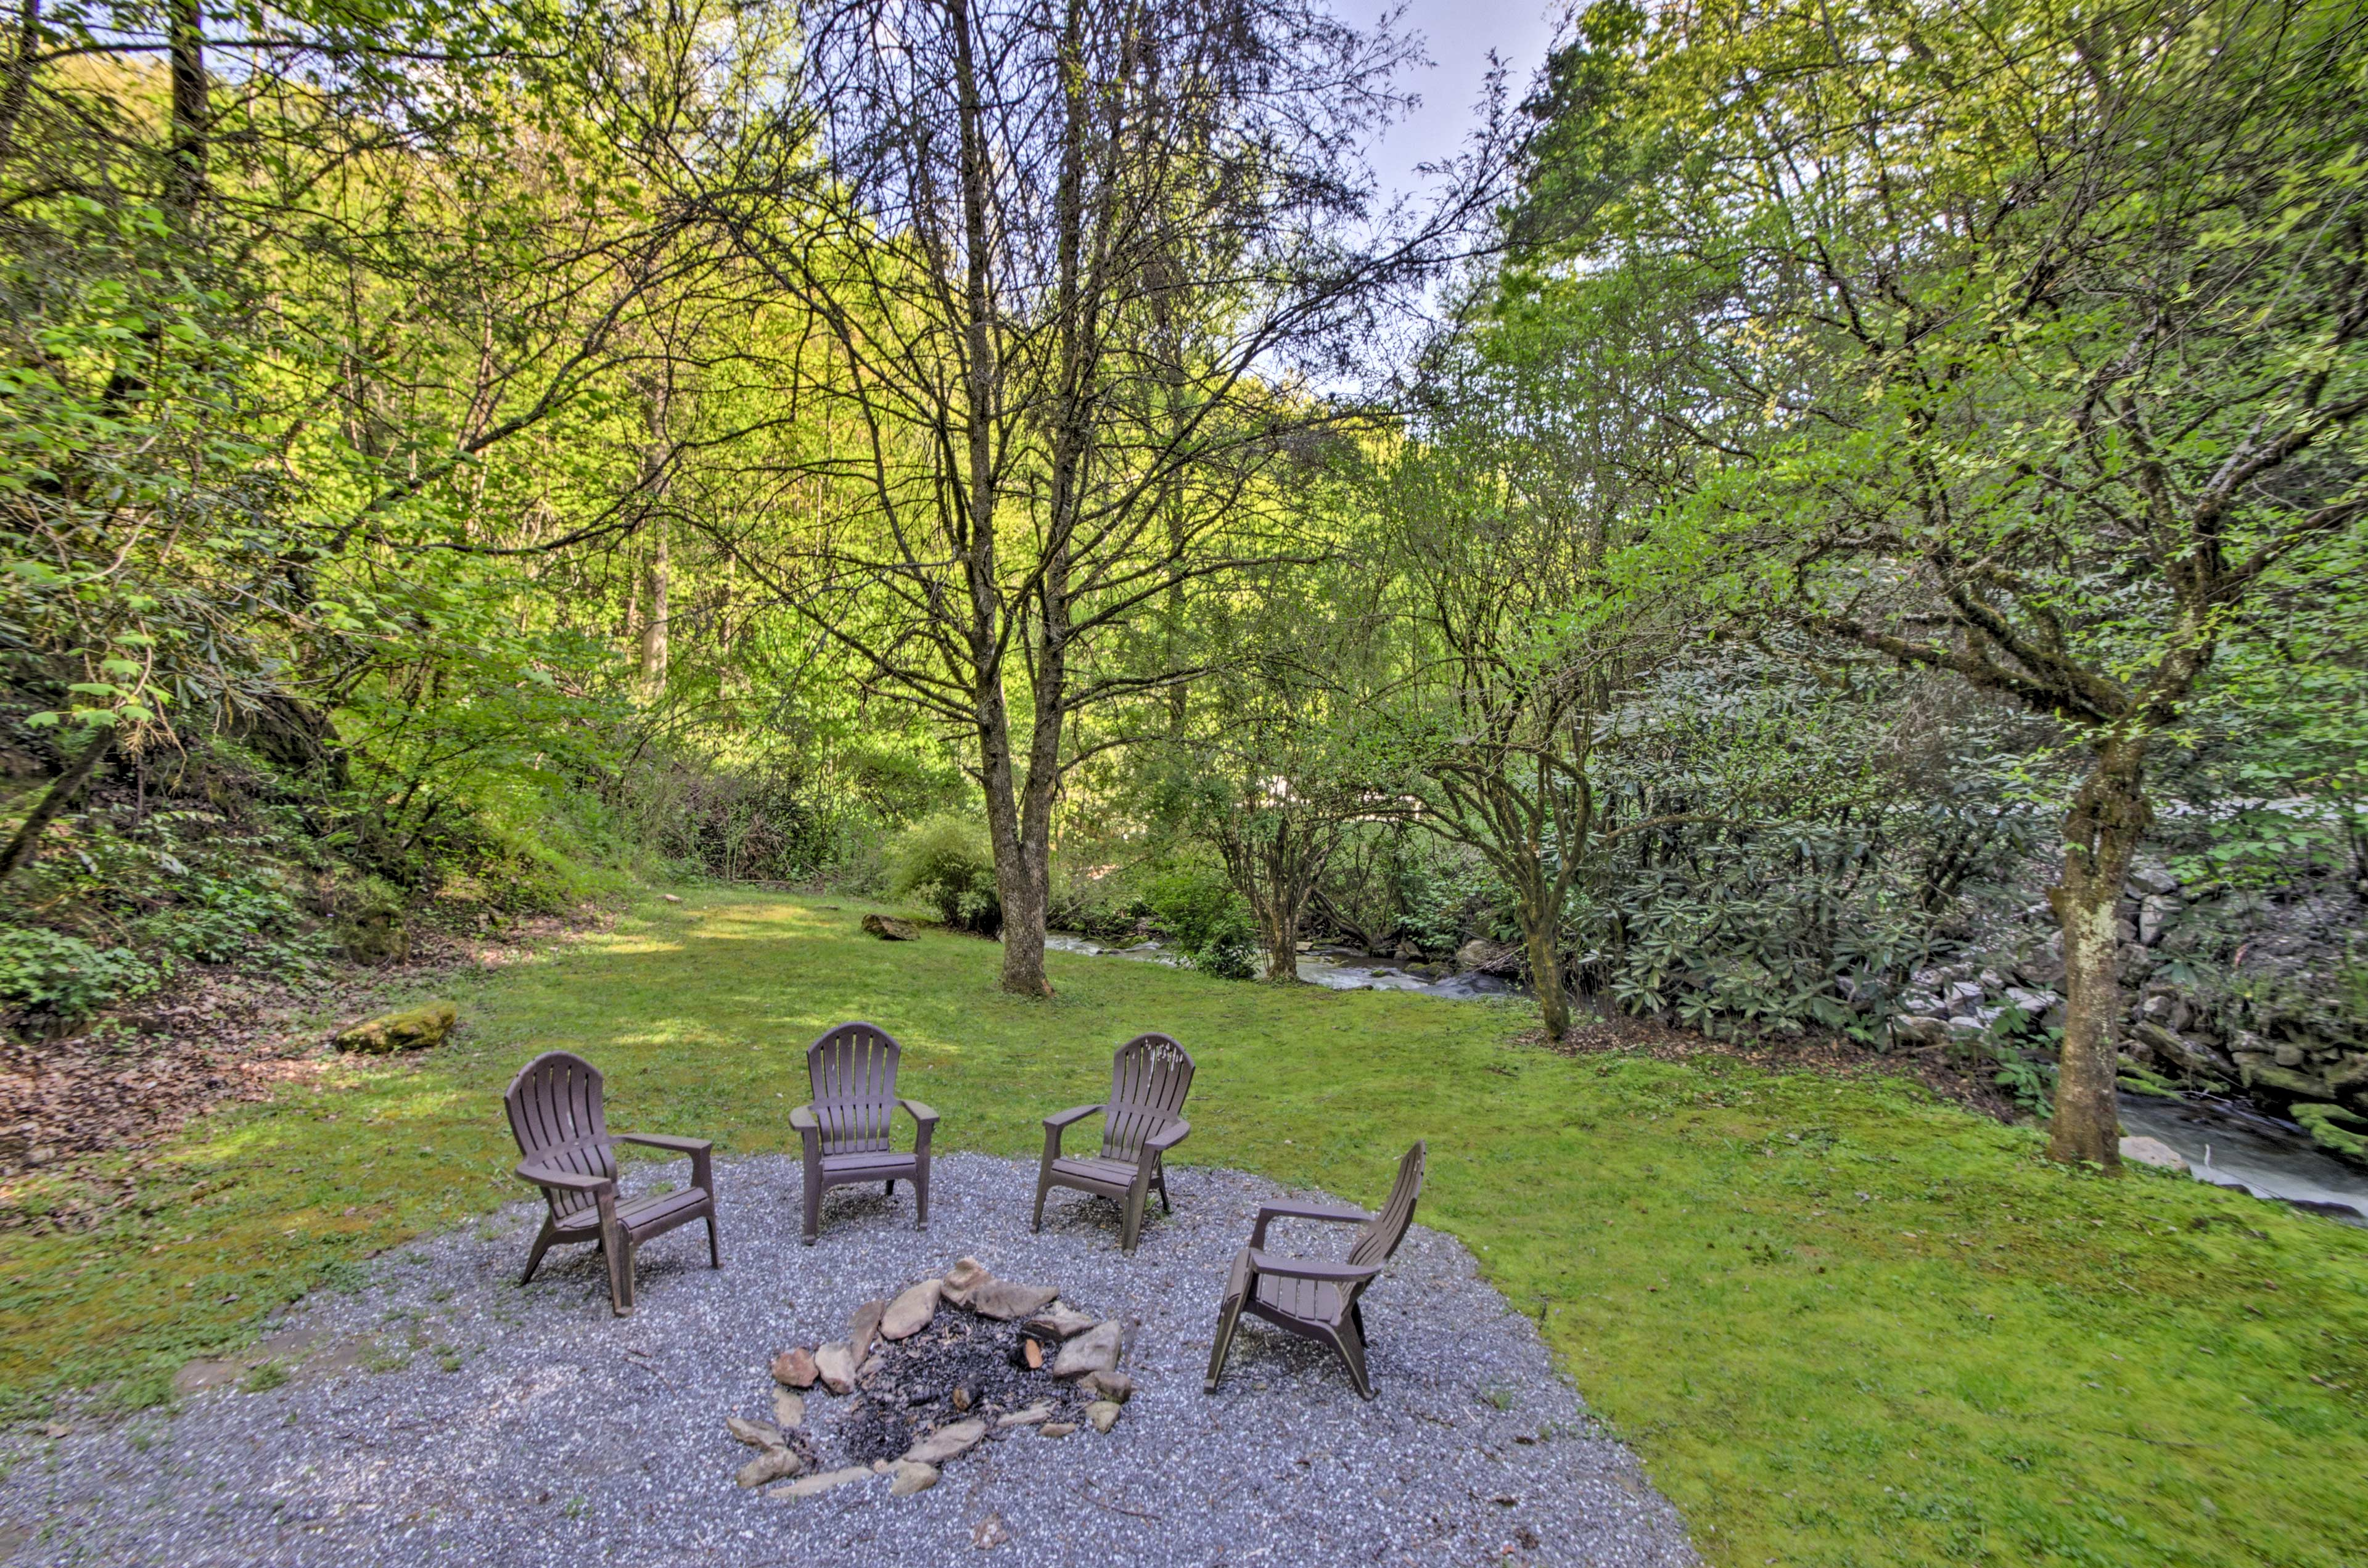 Soak in your location Bryson City location while sitting next to the fire pit!